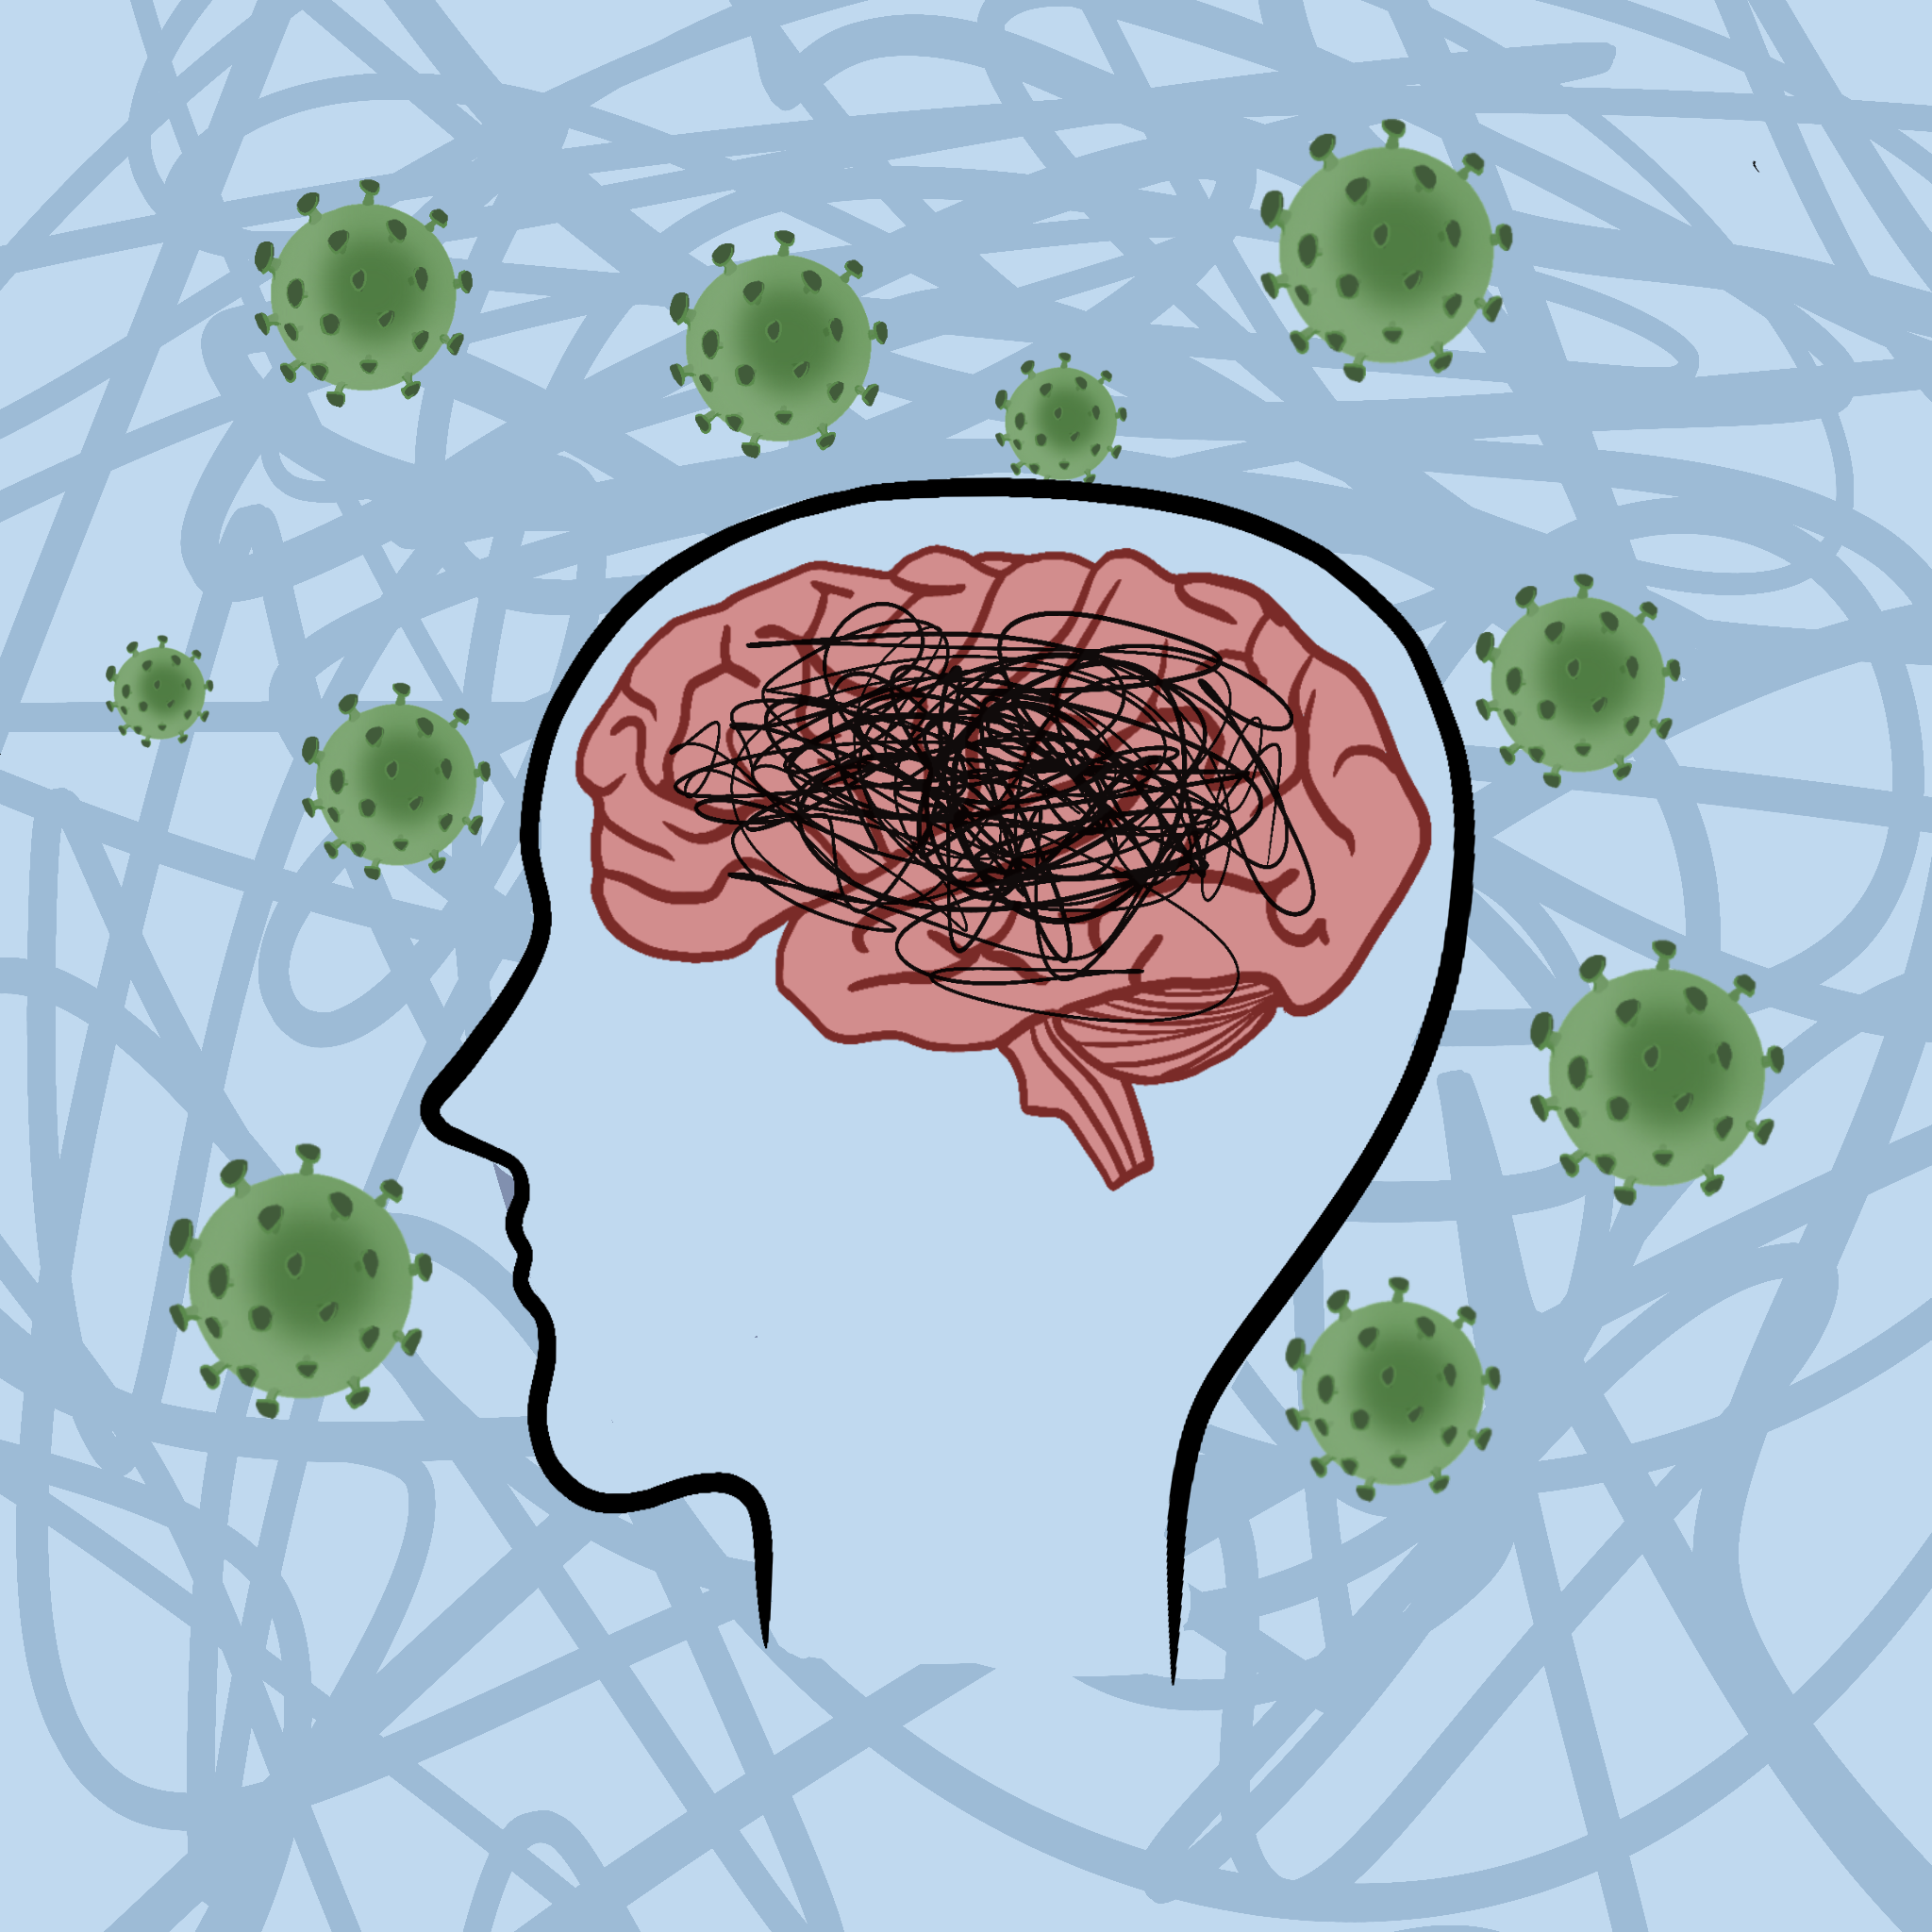 Featured Story: COVID-19: A Virus on The Body And The Mind